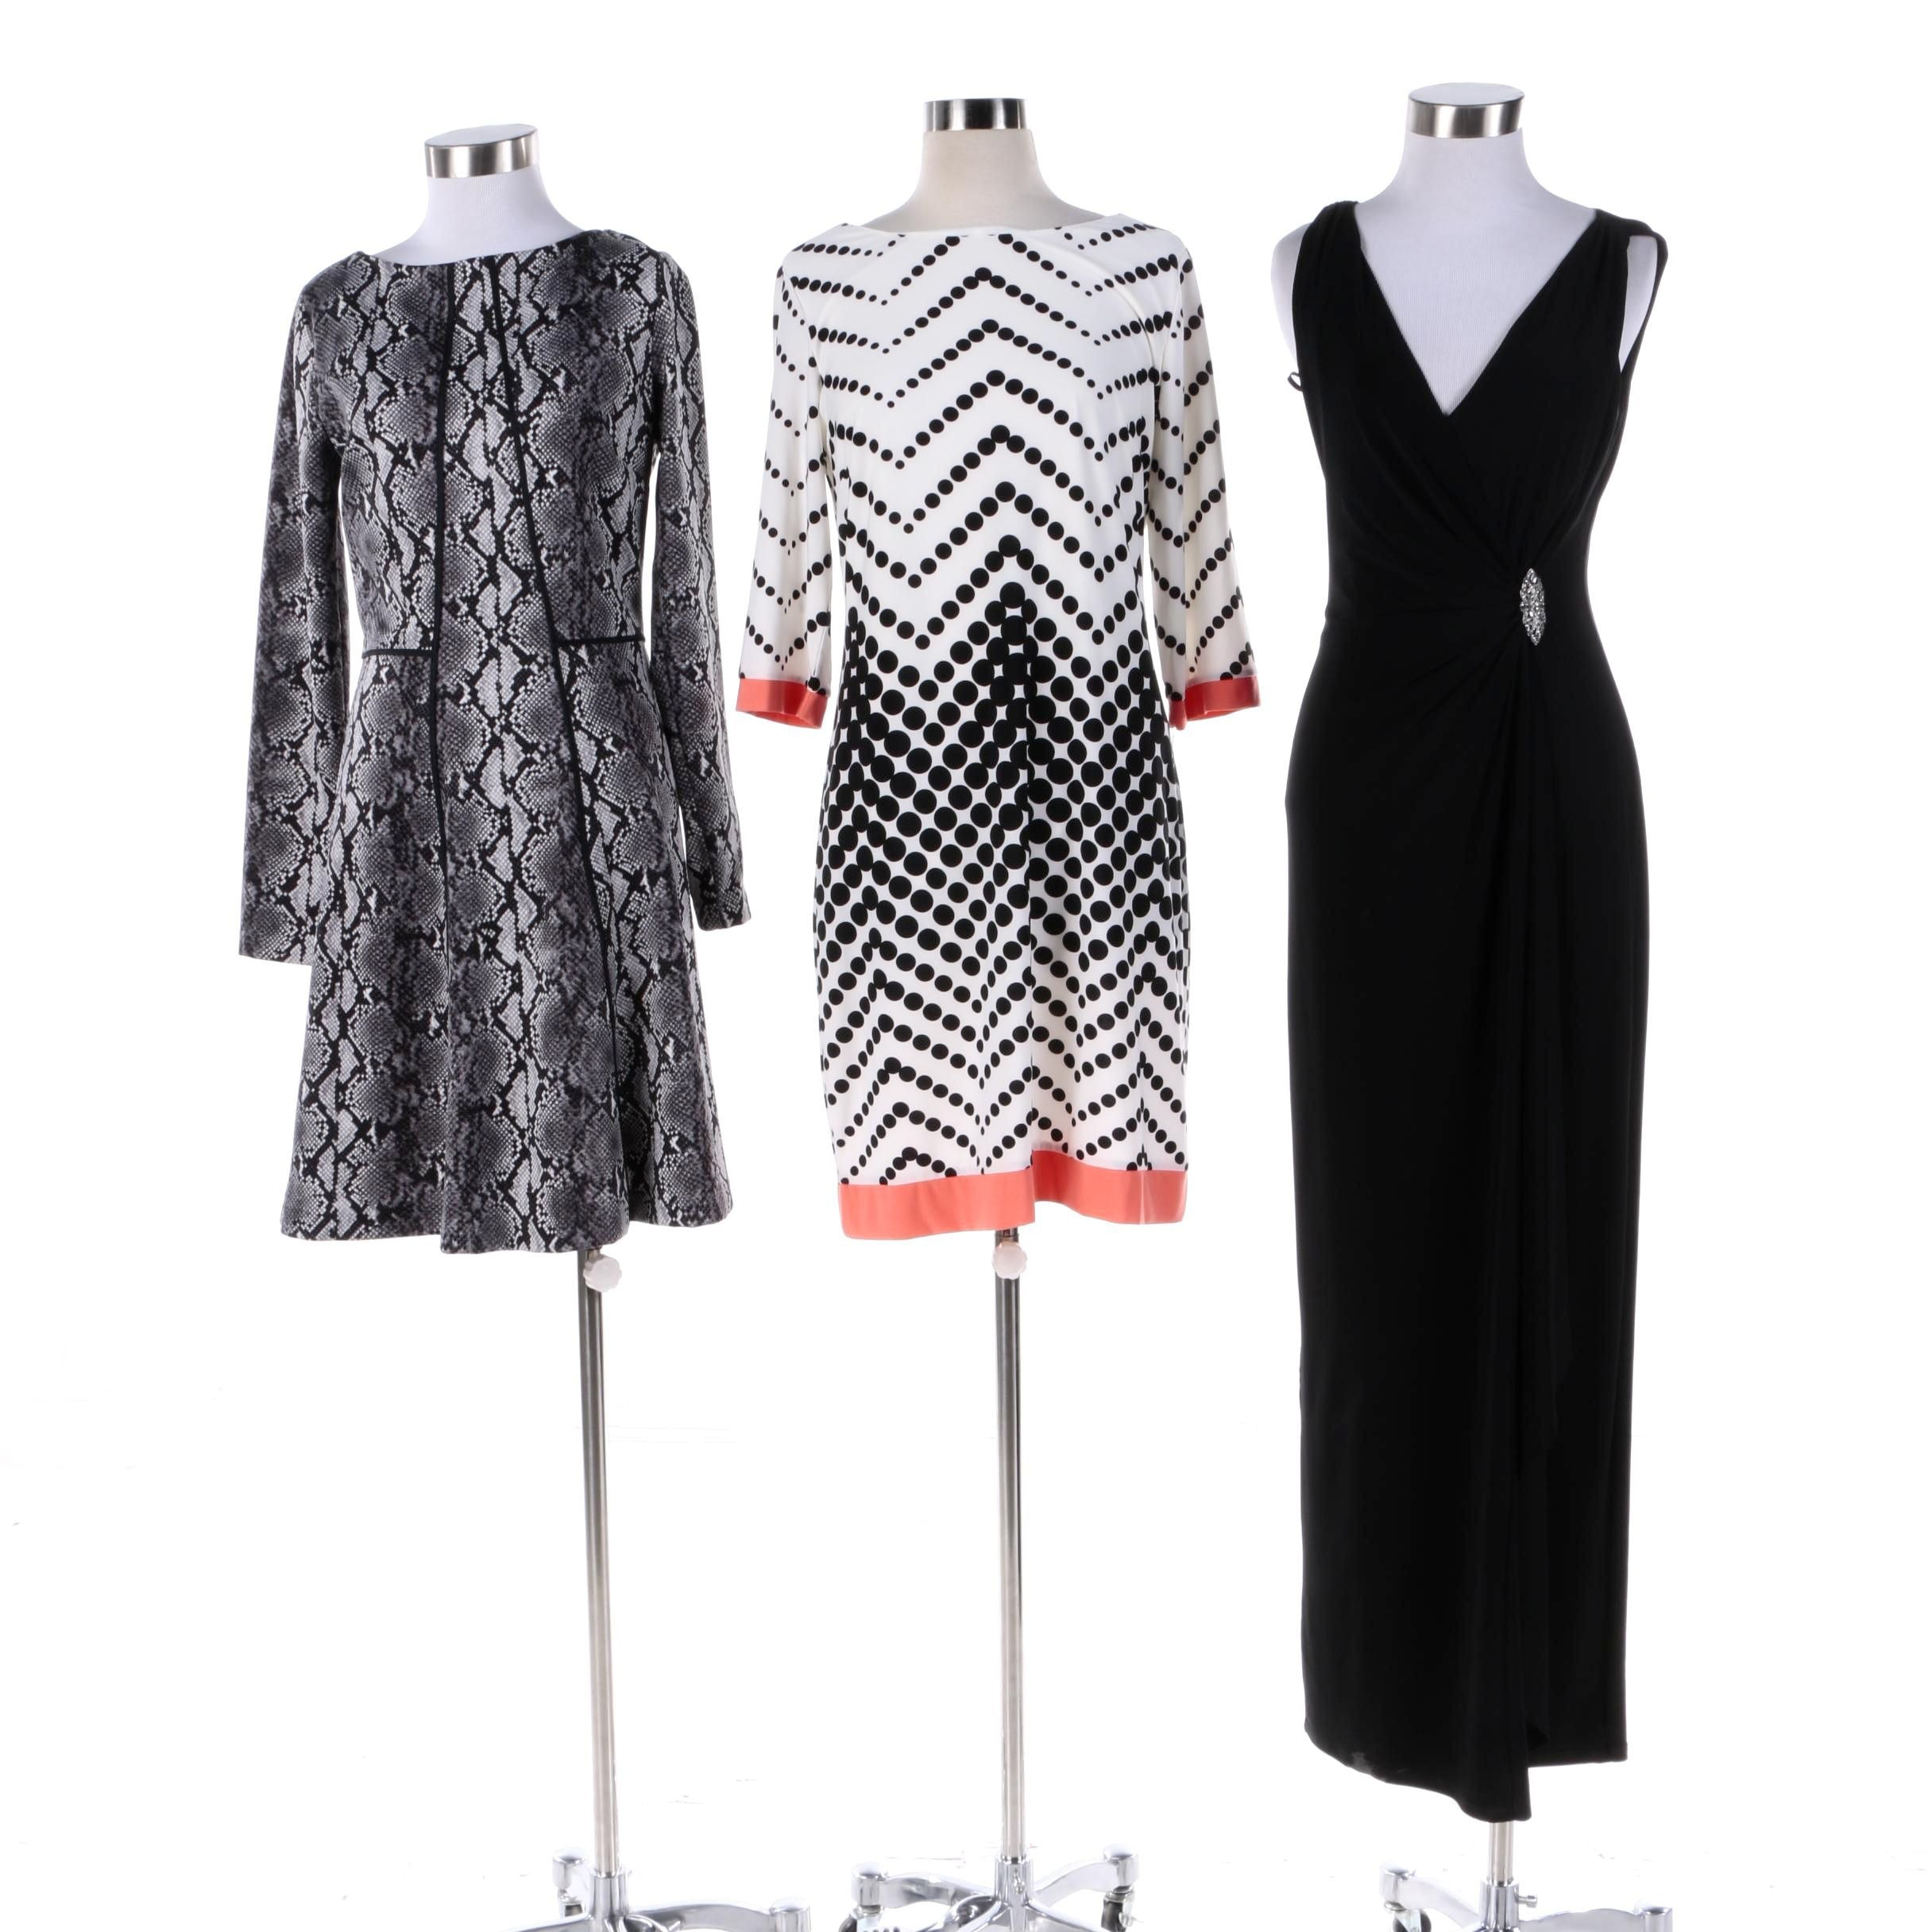 MICHAEL Michael Kors, Lauren Ralph Lauren, and Studio One Dresses